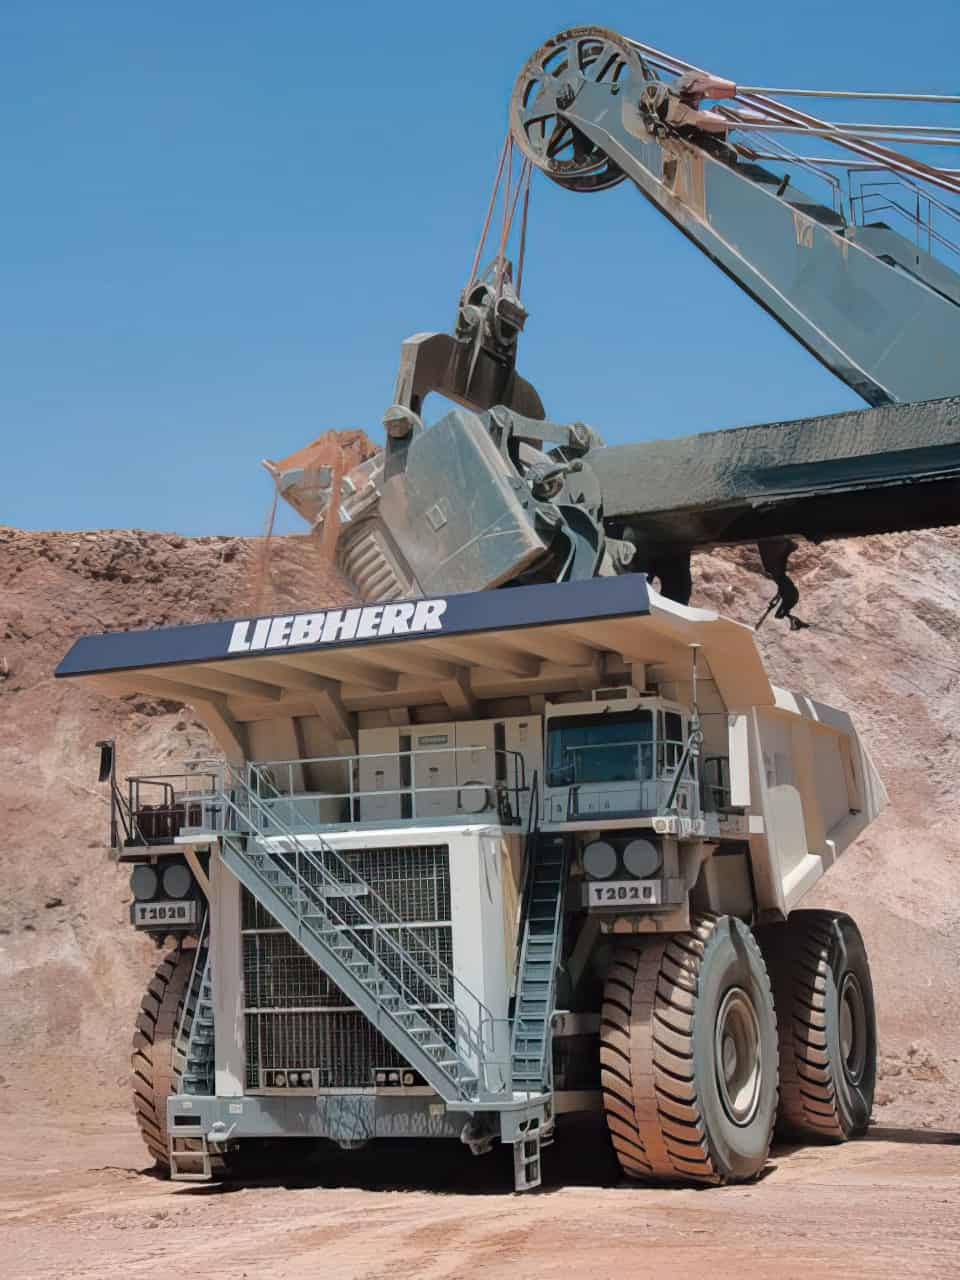 Liebherr T282B Dump Truck enlarged